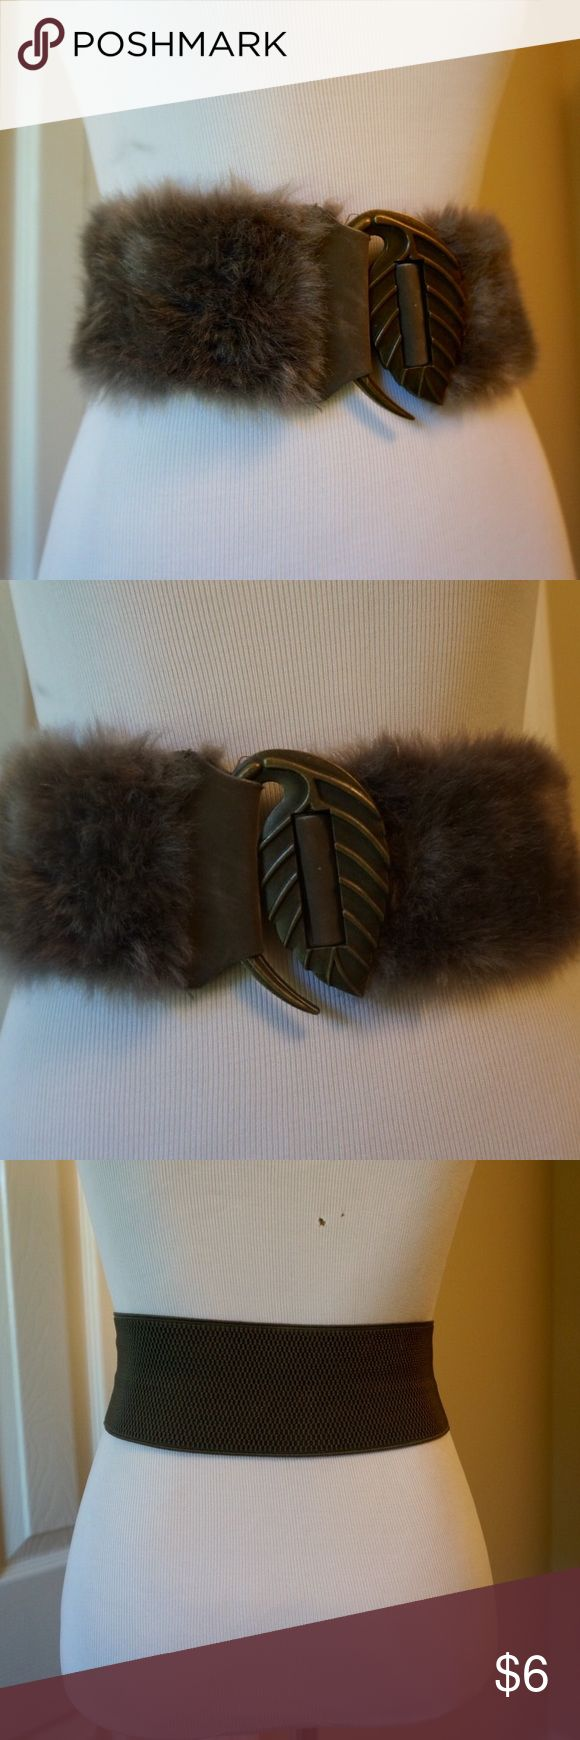 Spotted while shopping on Poshmark: Vintage faux leather belt gray! #poshmark #fashion #shopping #style #Vintage #Accessories